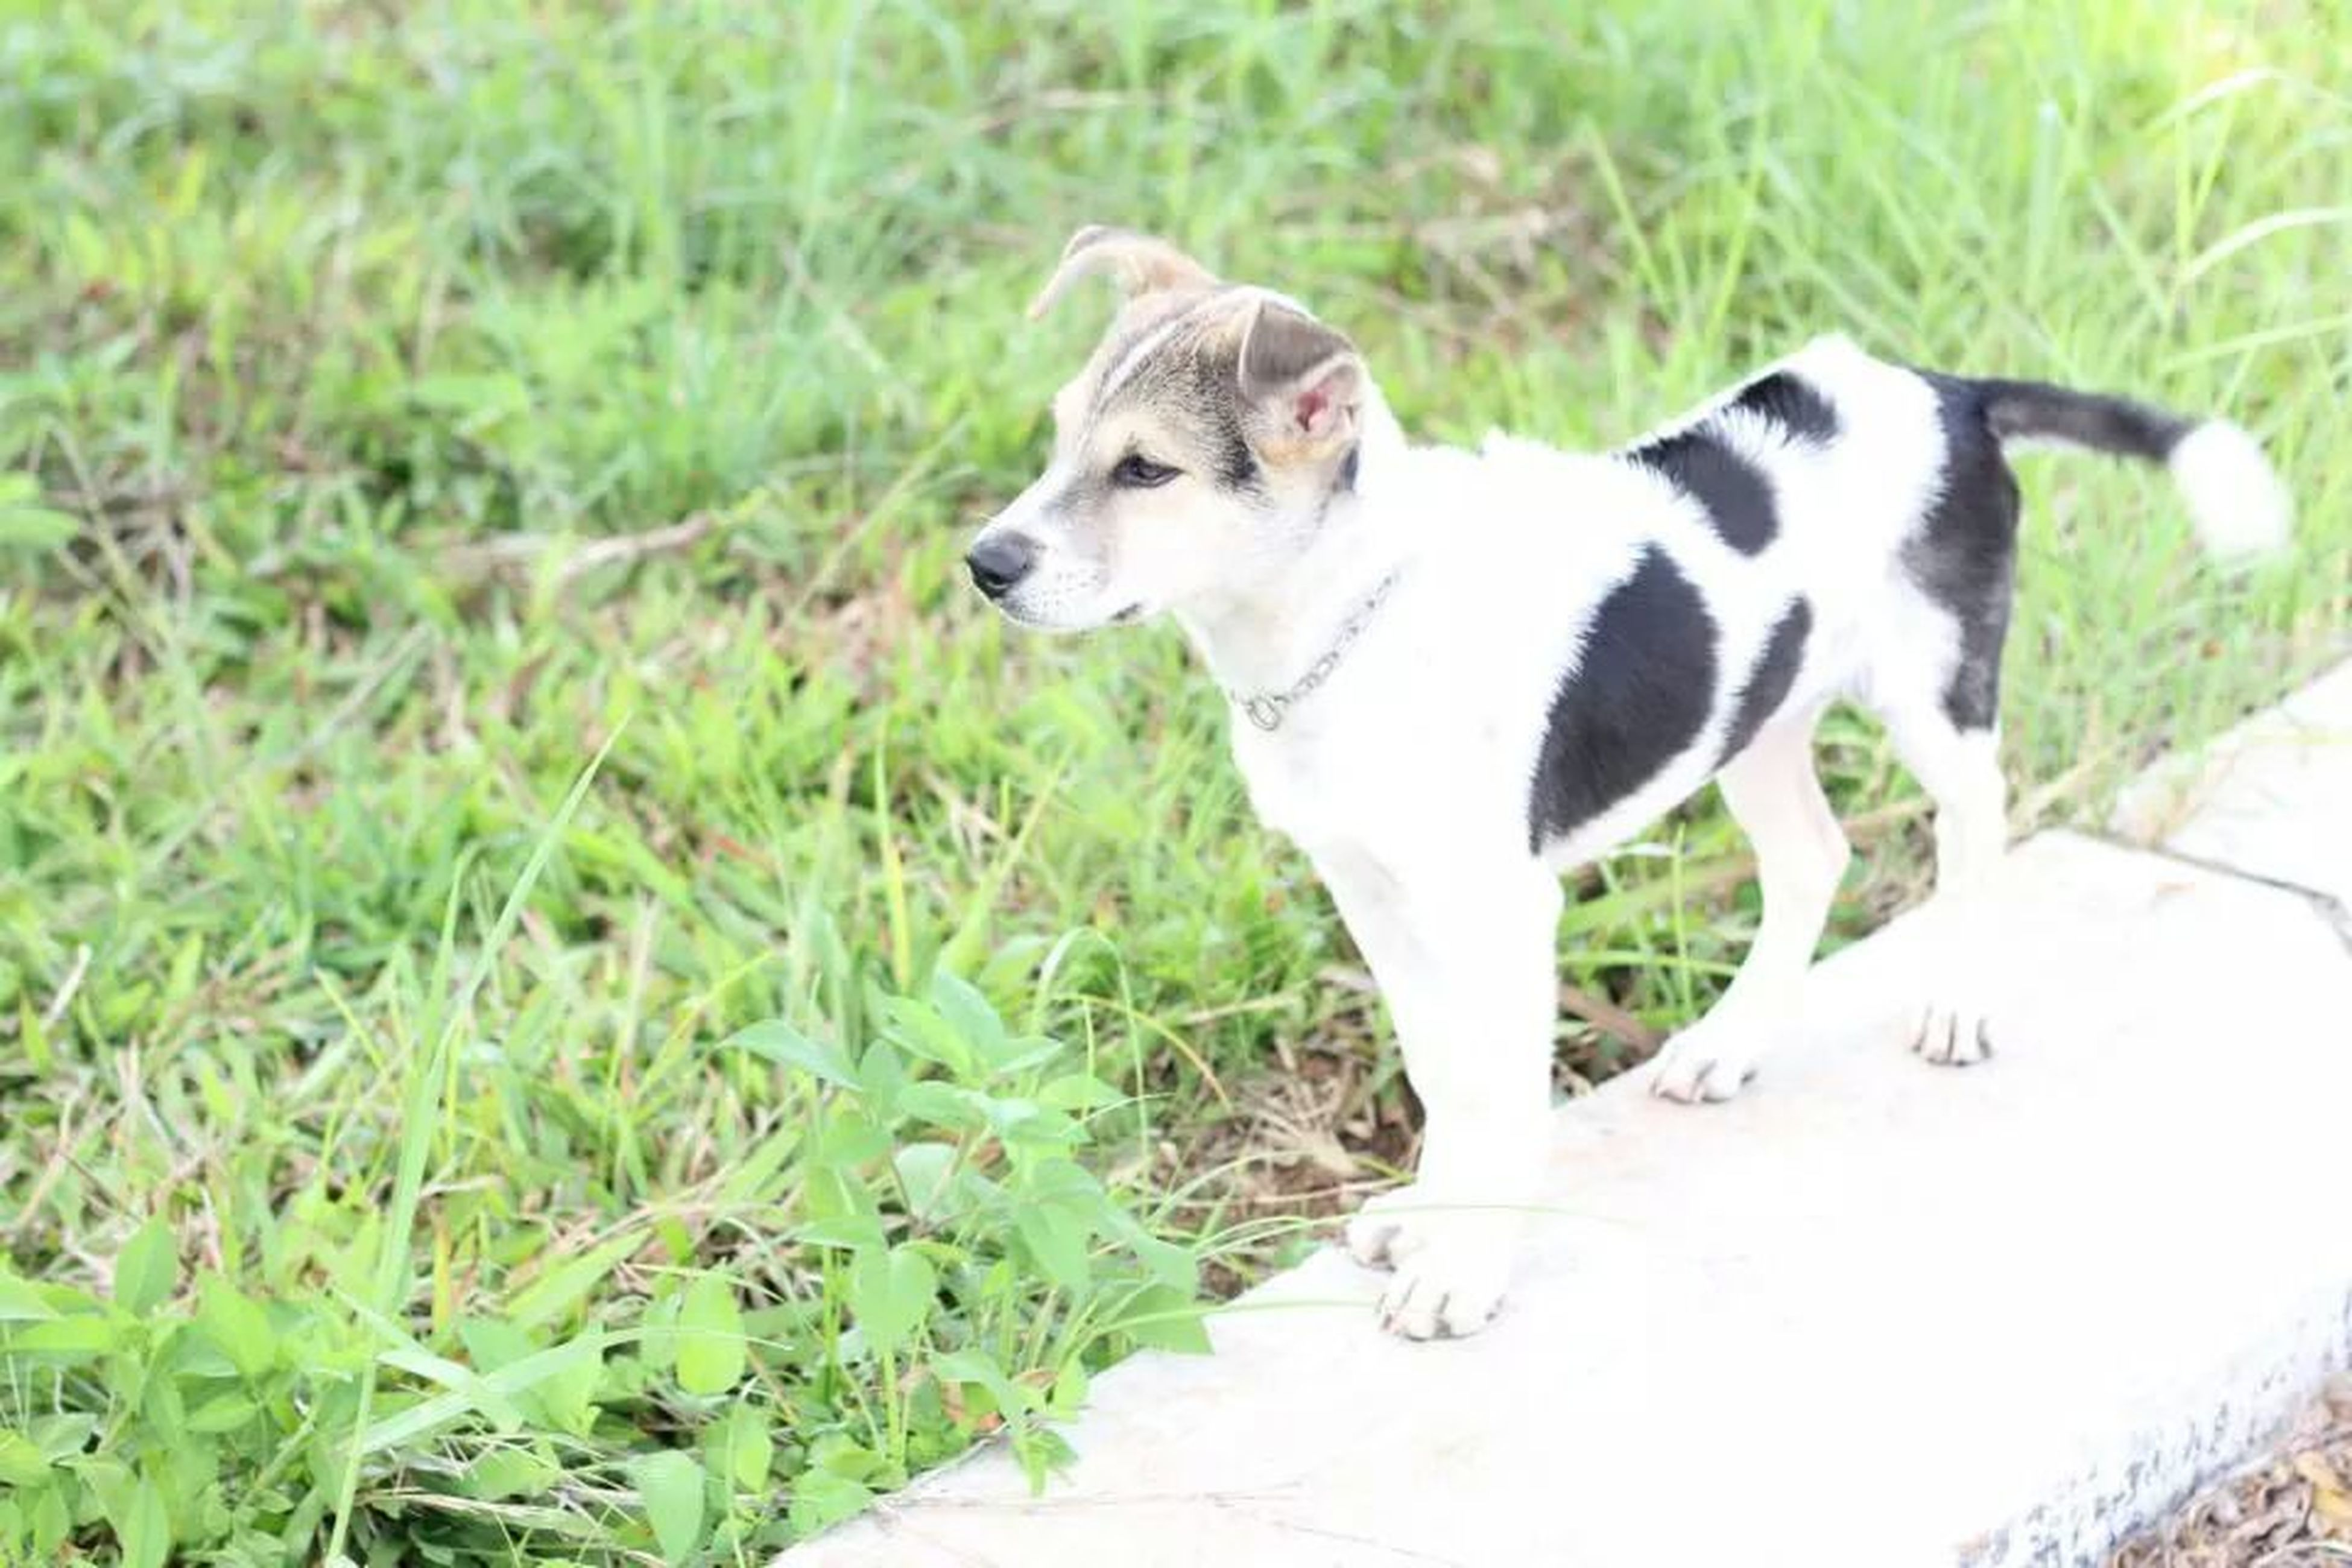 pets, domestic animals, one animal, animal themes, dog, mammal, grass, field, green color, grassy, full length, pet collar, plant, sitting, growth, nature, day, outdoors, looking at camera, no people